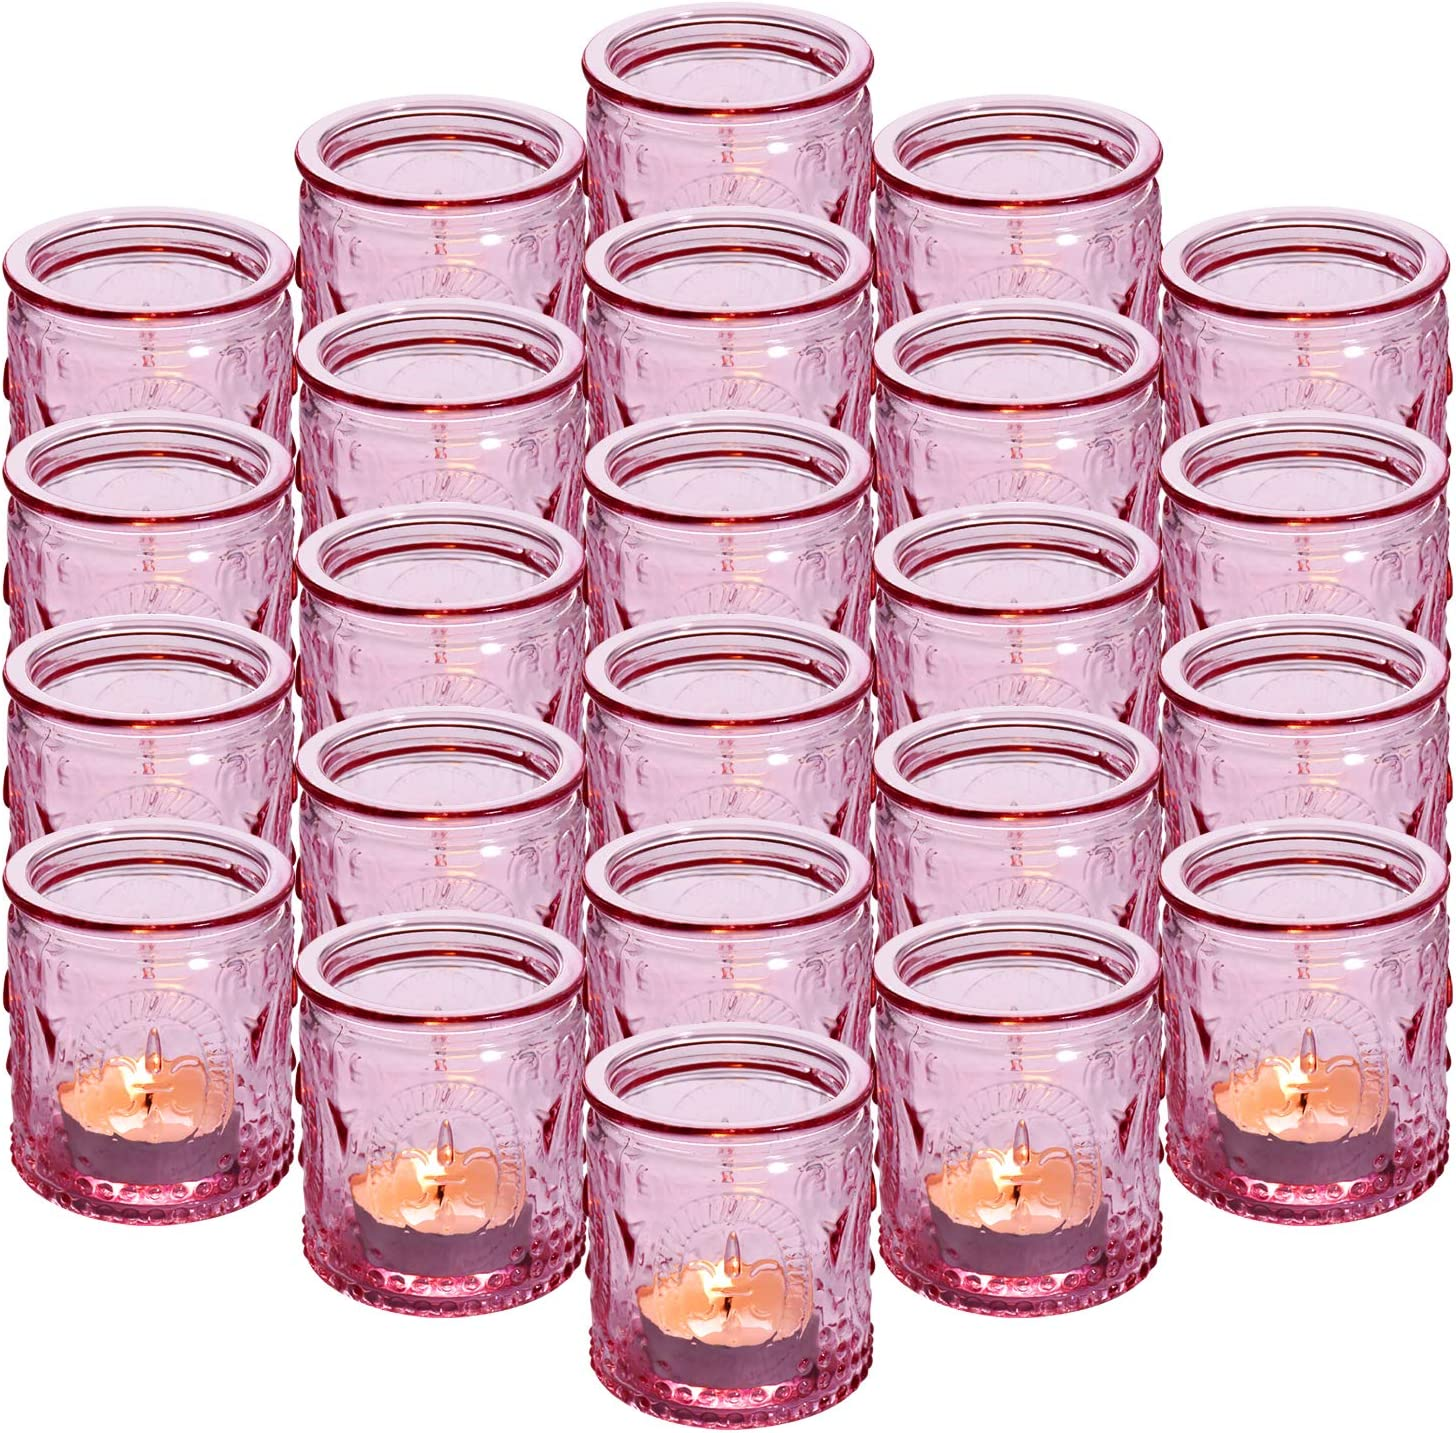 "24-Pack Glass Vintage Candle Holders Votive Candle Wax Cups Tealight Holders - Ideal for Table Centerpieces, Wedding Prom ,Party, Home Decor, 2.28""D x 2.75""H"